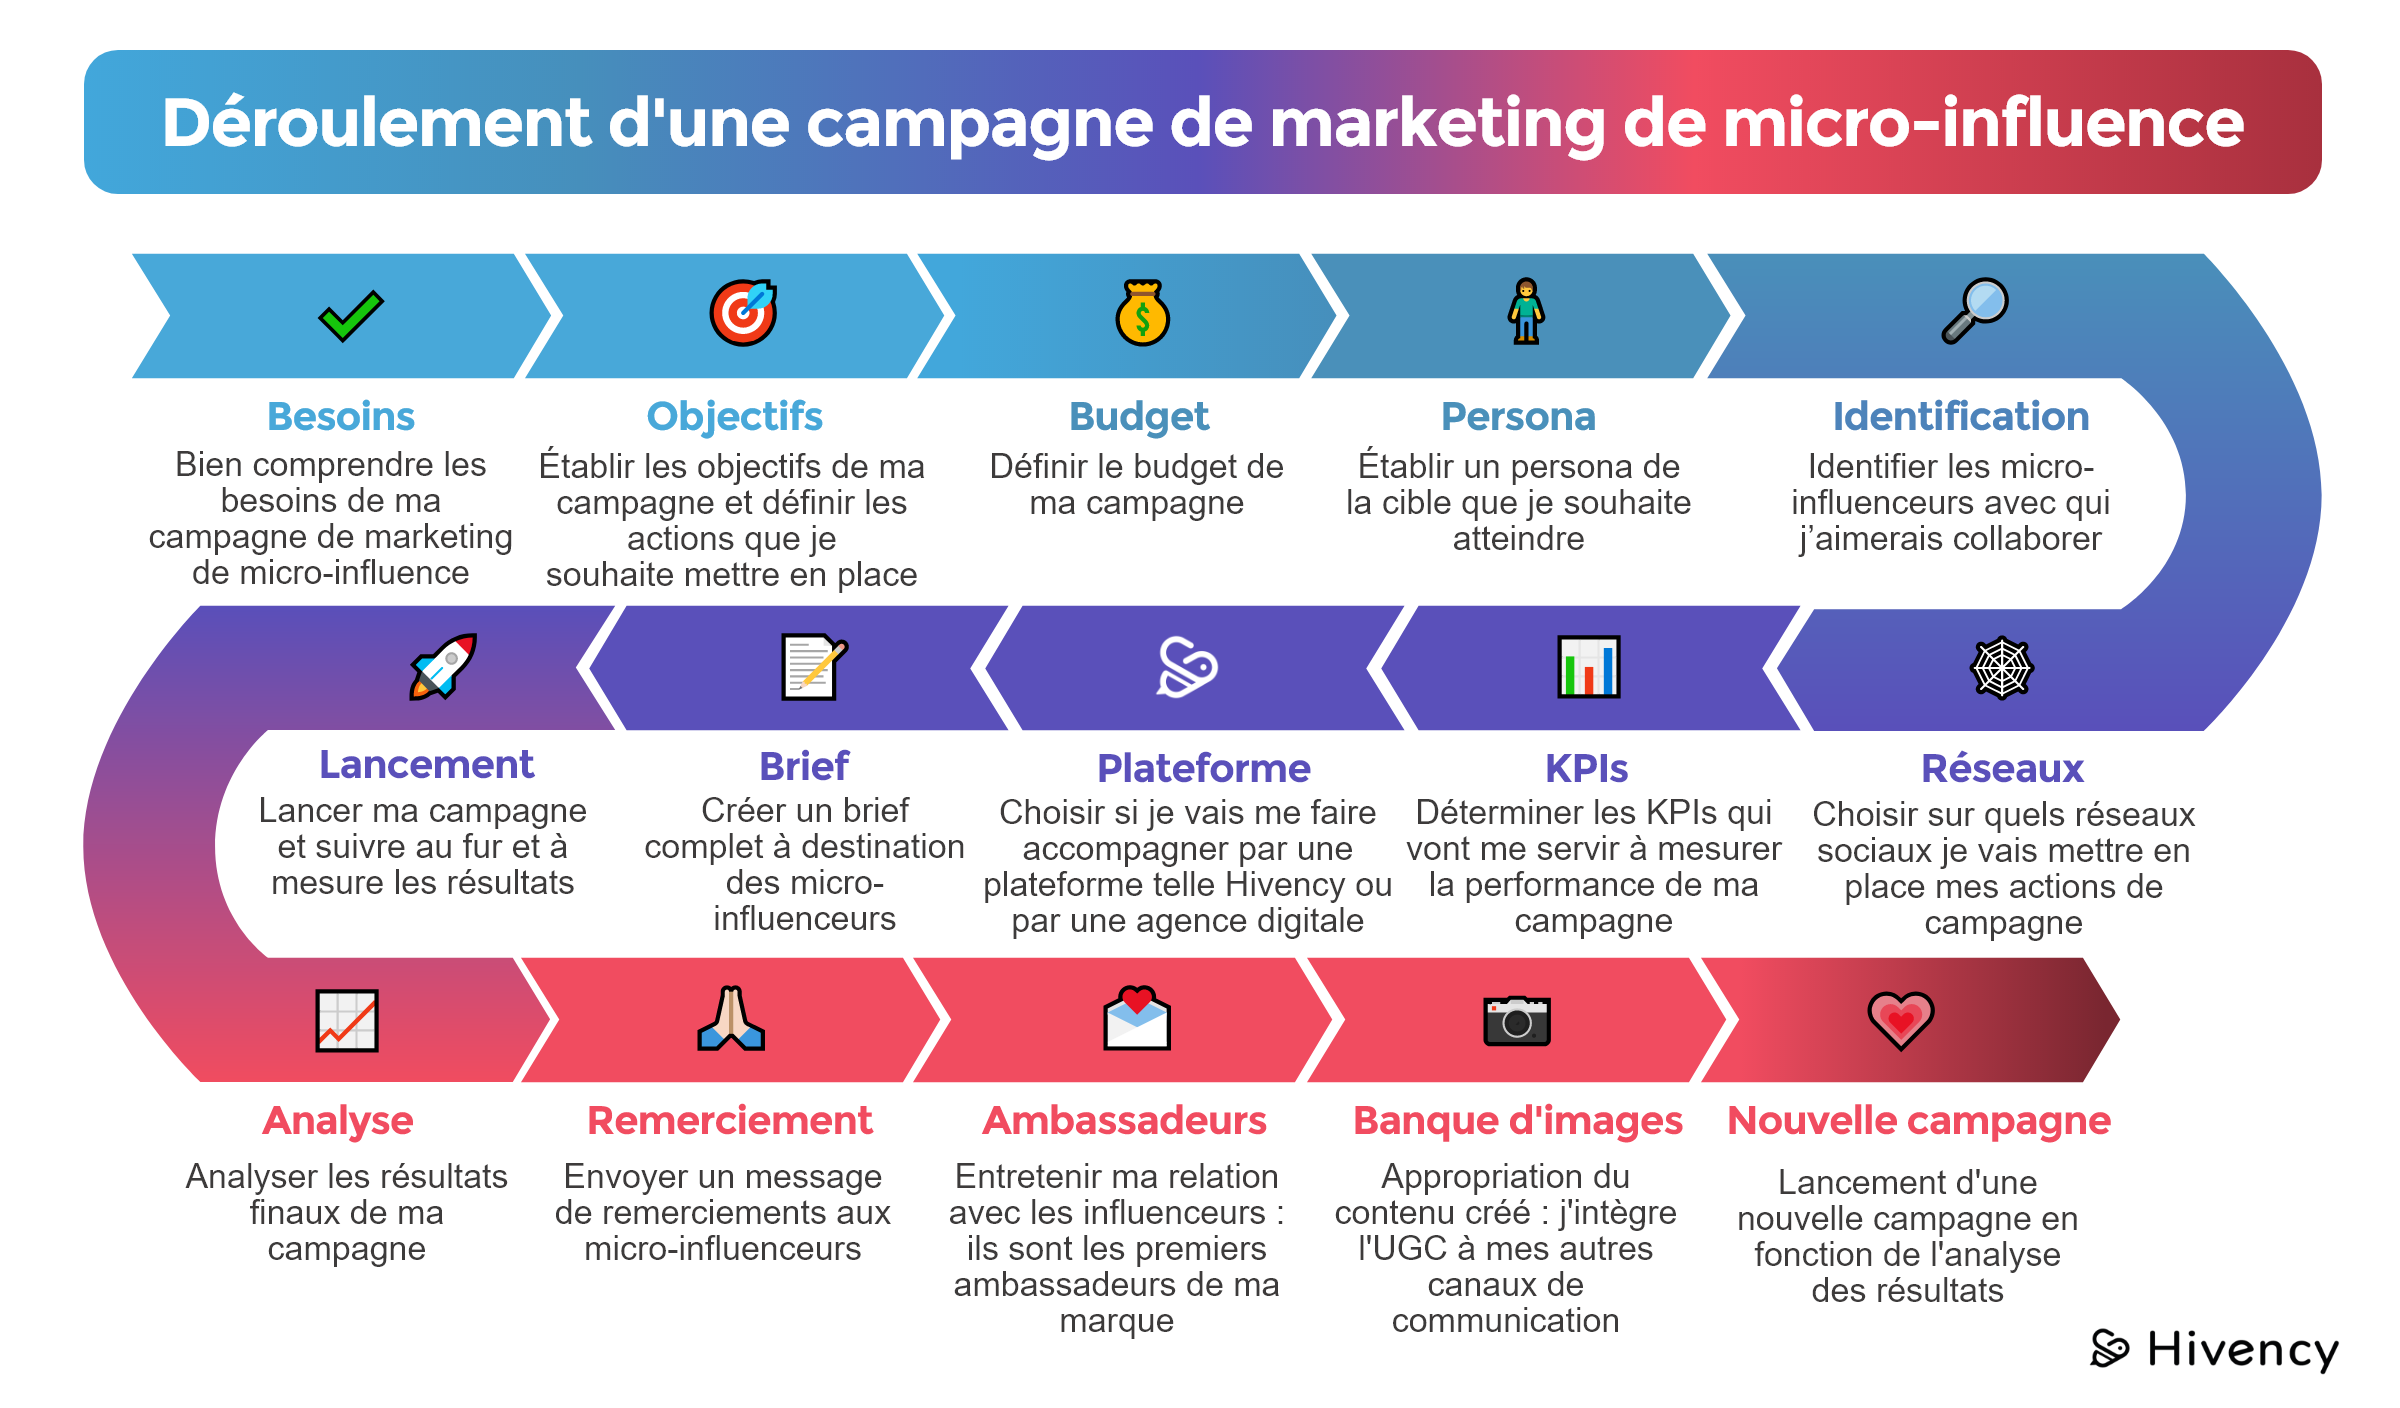 Deroulement campagne de micro-influence_Blog Hivency